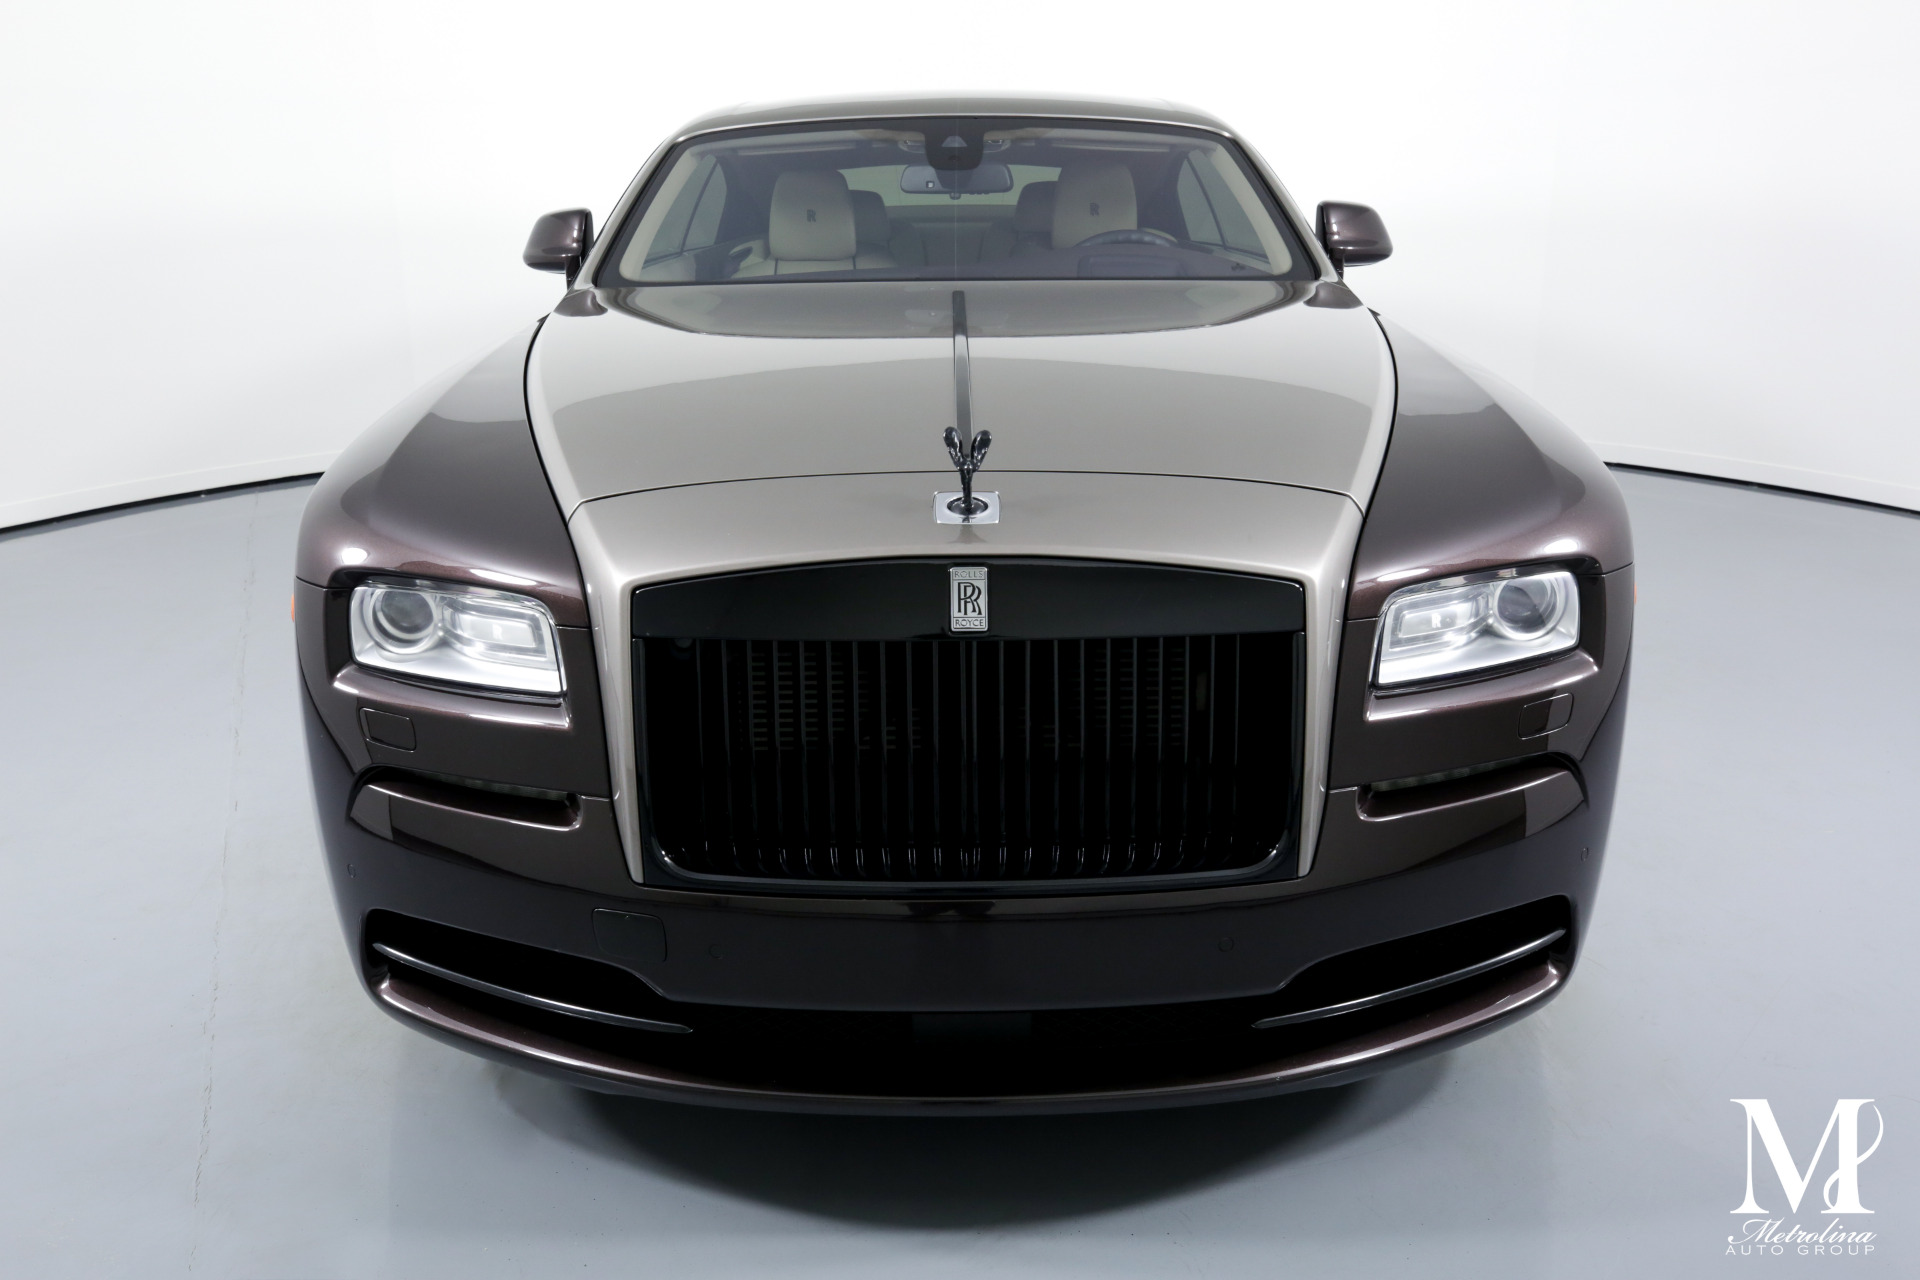 Used 2014 Rolls-Royce Wraith for sale $157,996 at Metrolina Auto Group in Charlotte NC 28217 - 3